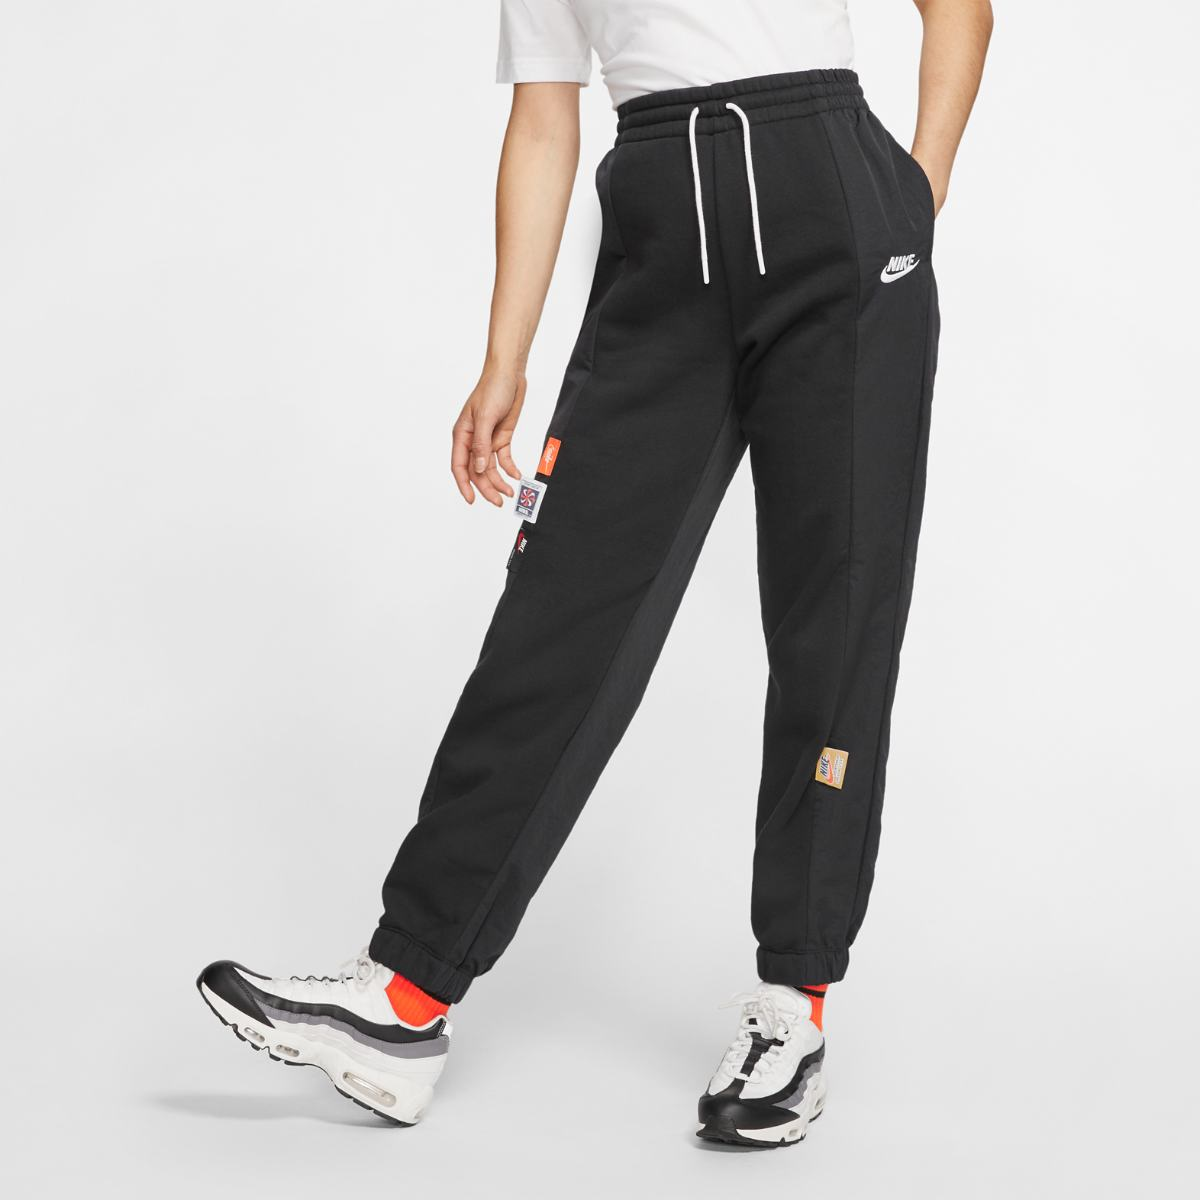 Брюки NIKE W NSW ICN CLSH PANT MIXED OS